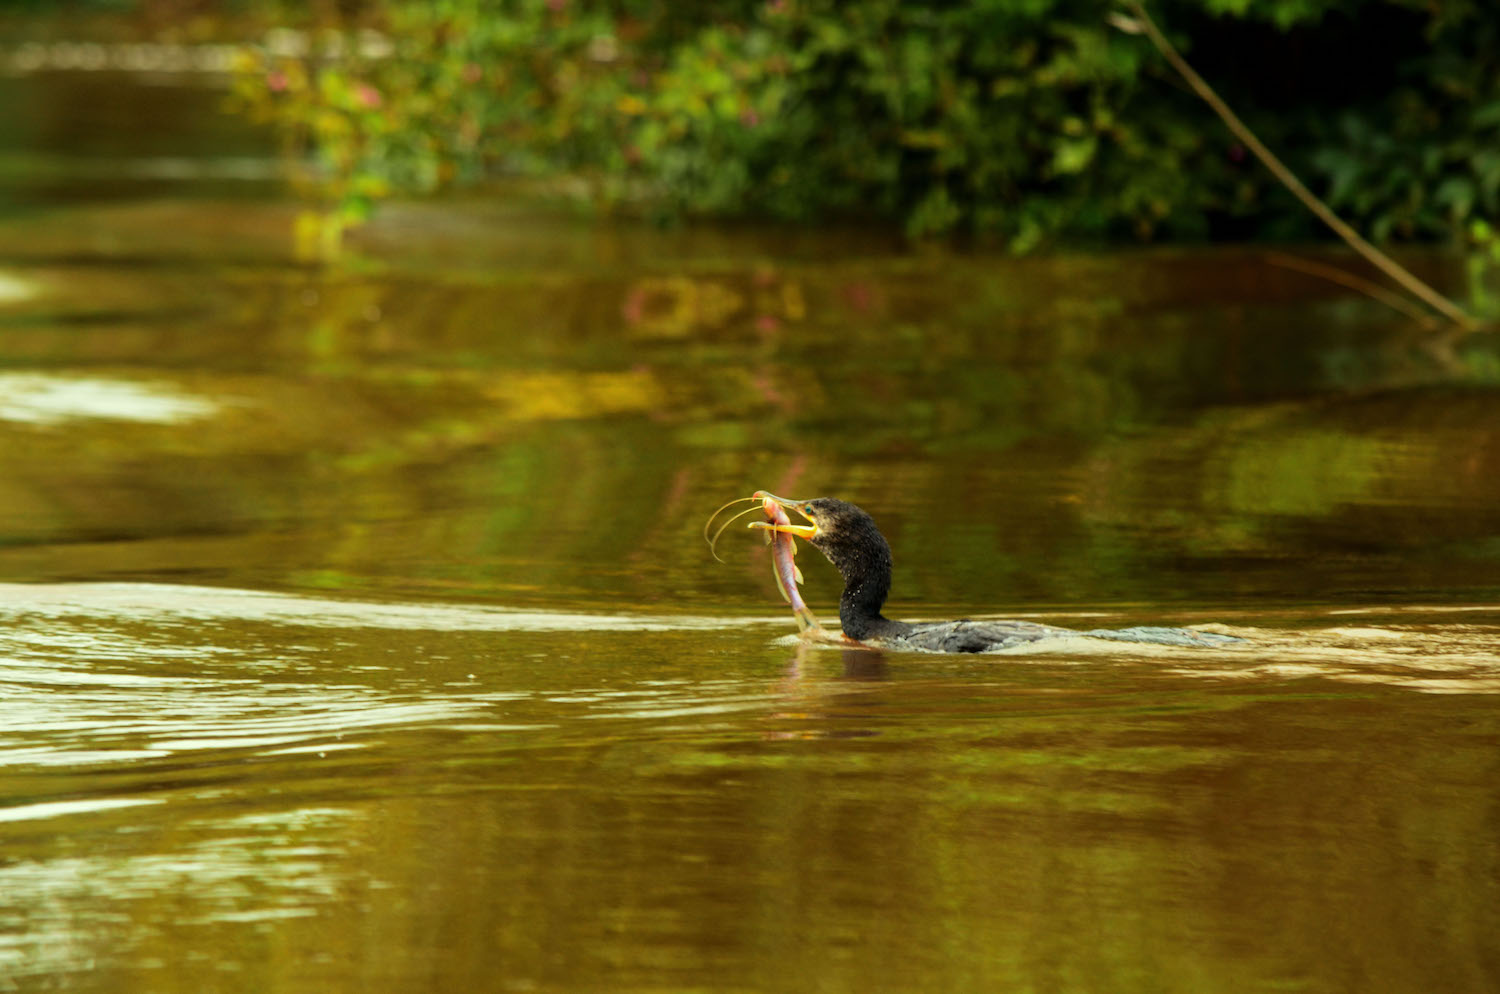 An ahinga (Anhinga anhinga) -- locally called a